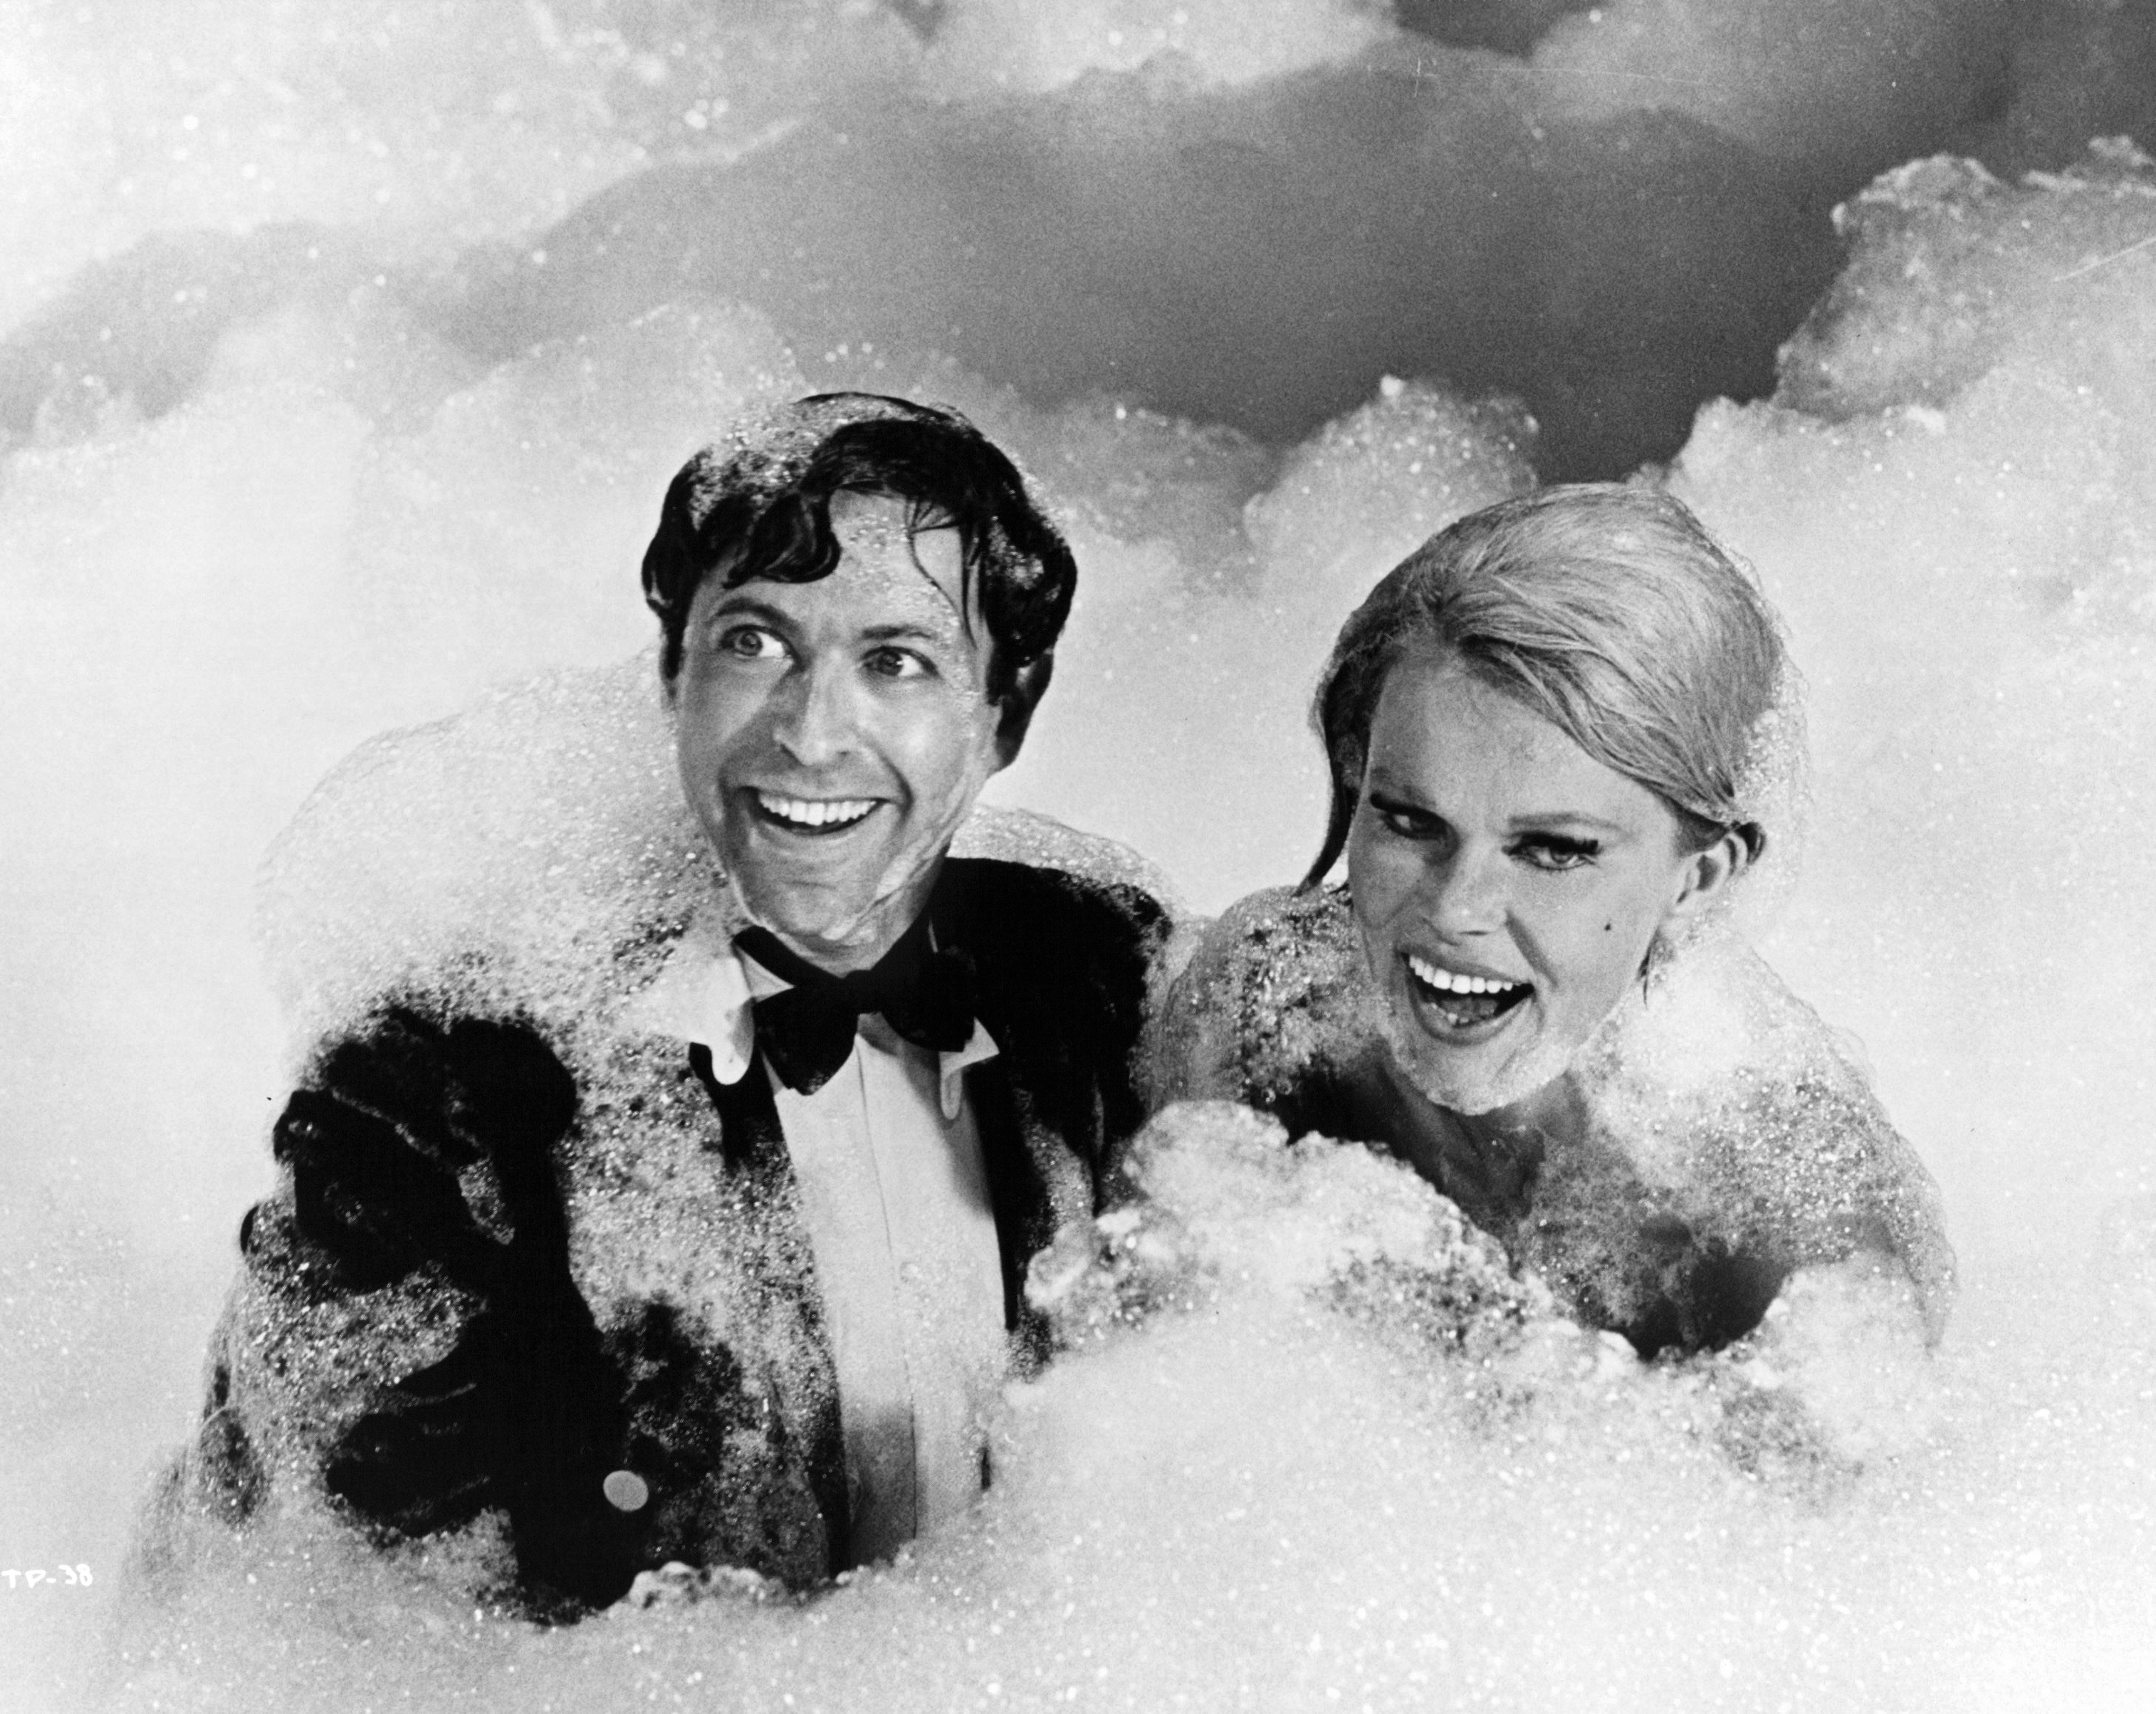 Corinne Cole and Steve Franken in The Party (1968)